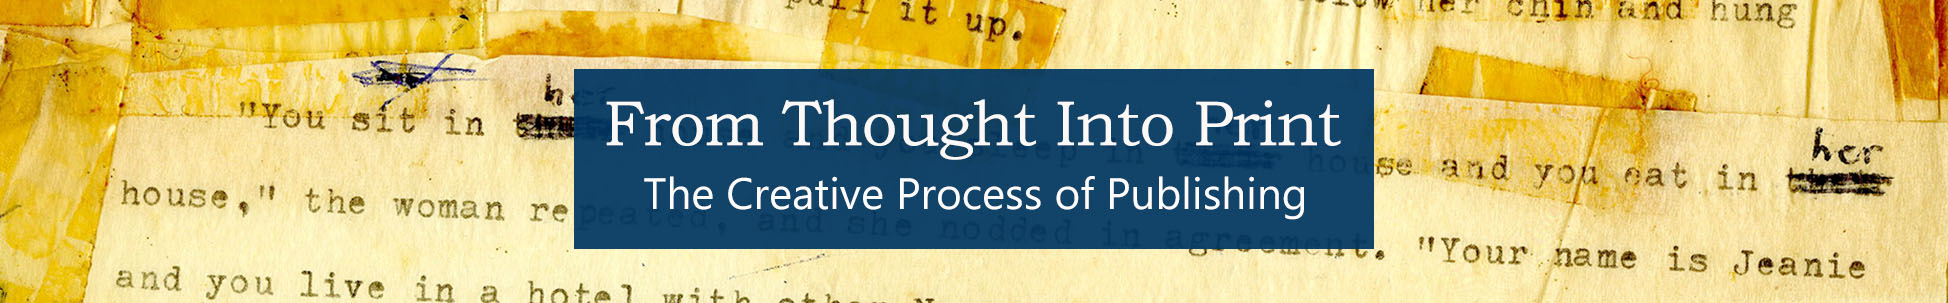 Banner Image for From Thought Into Print